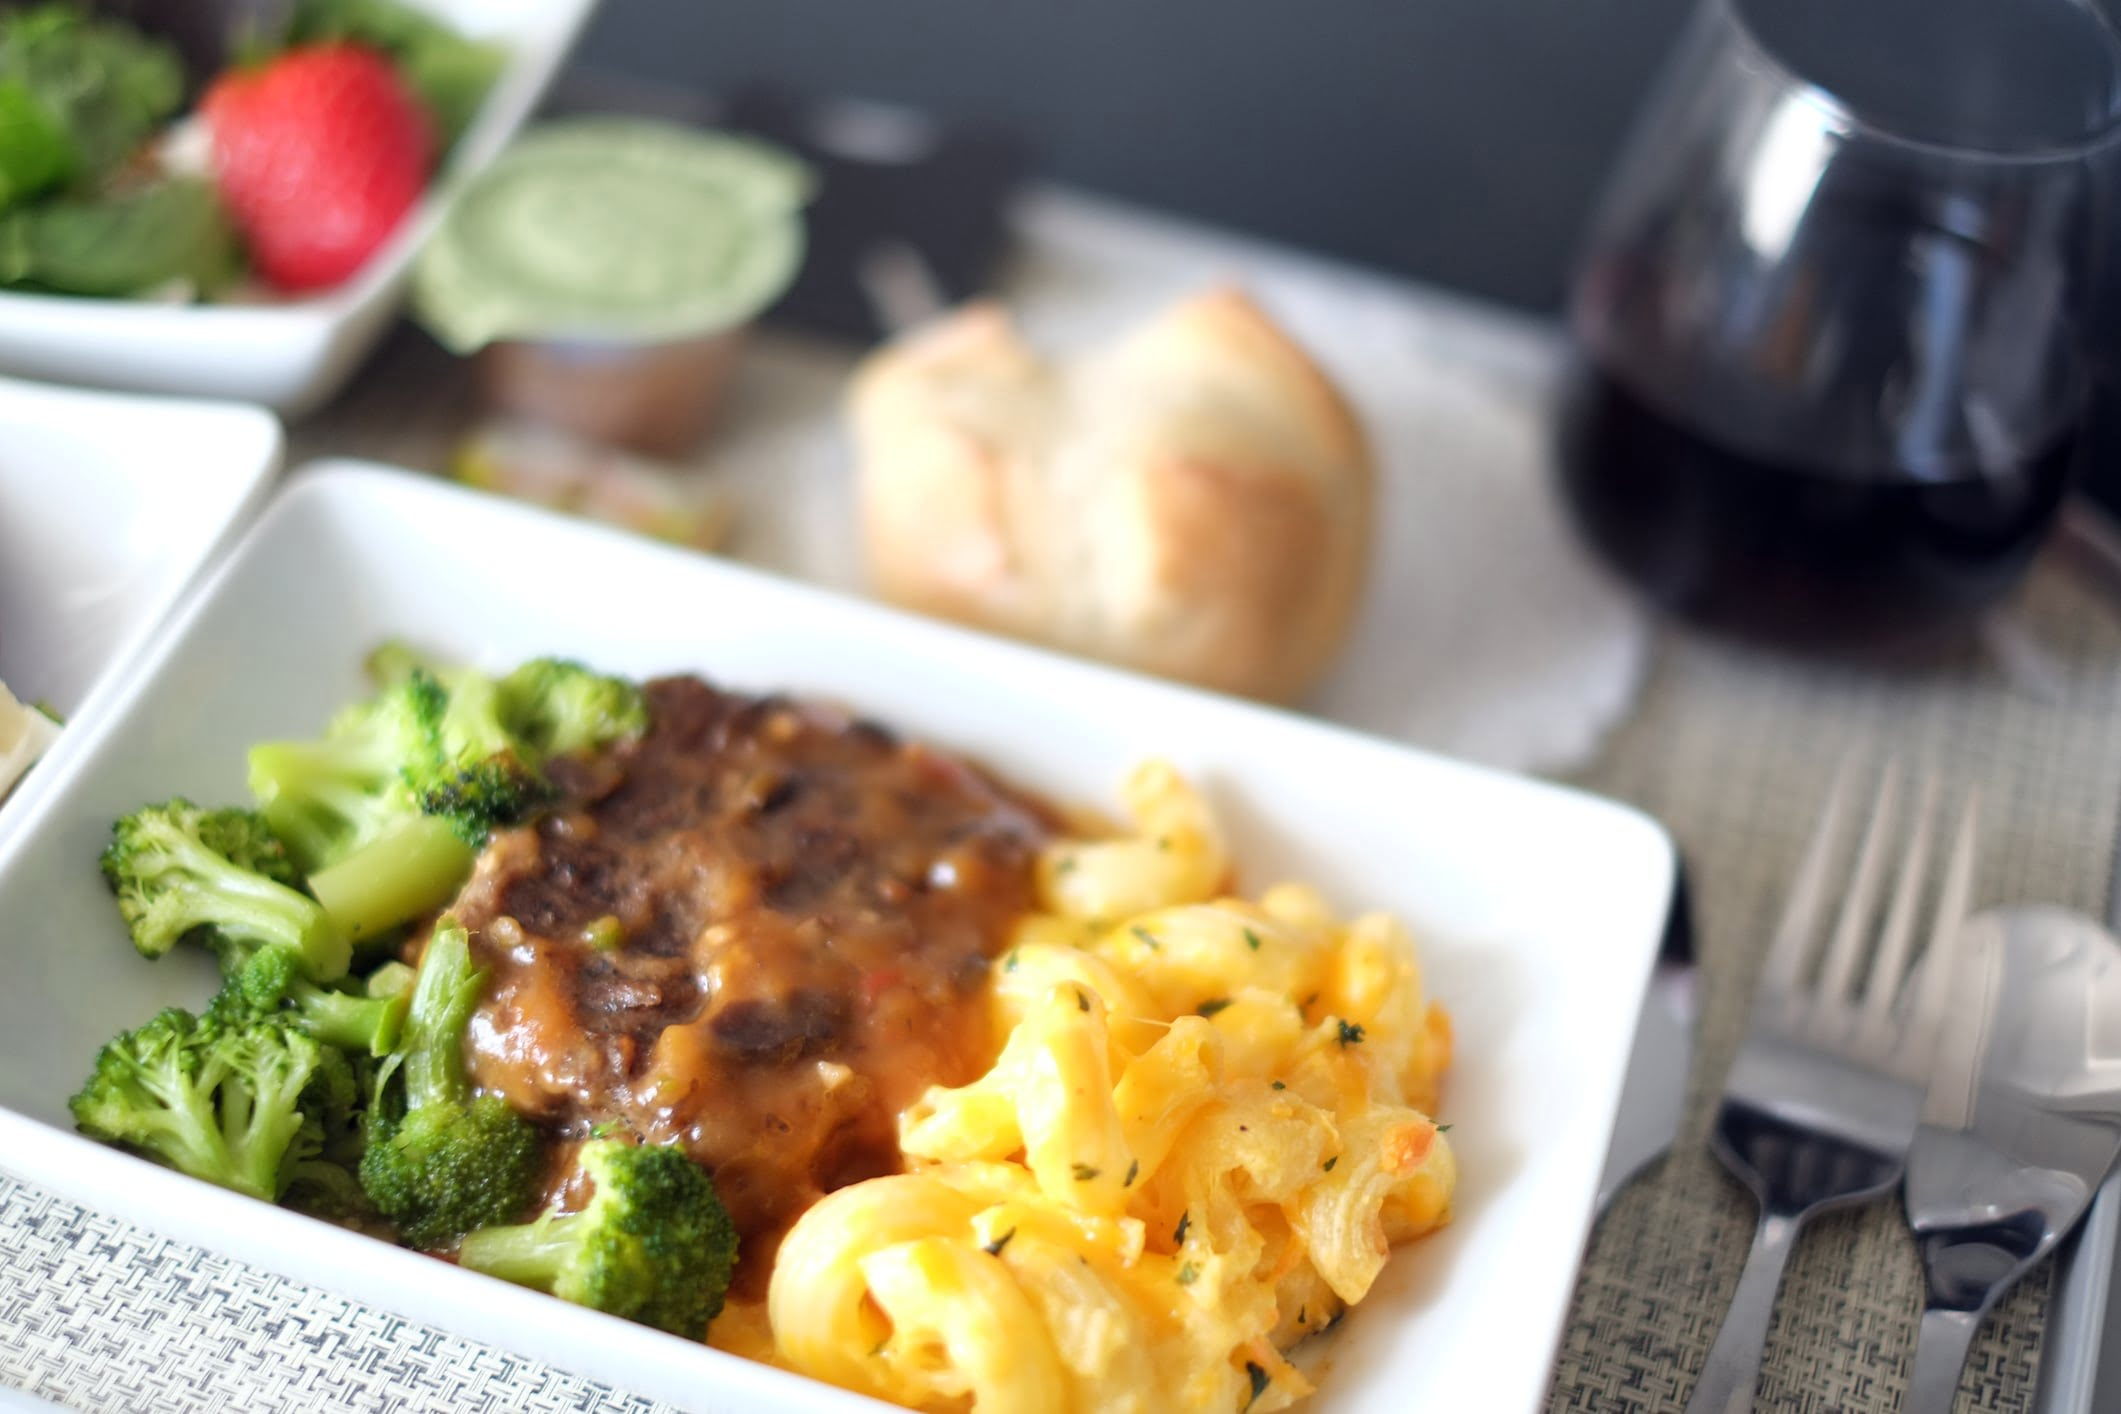 Aeroplane meal with pasta and vegetables